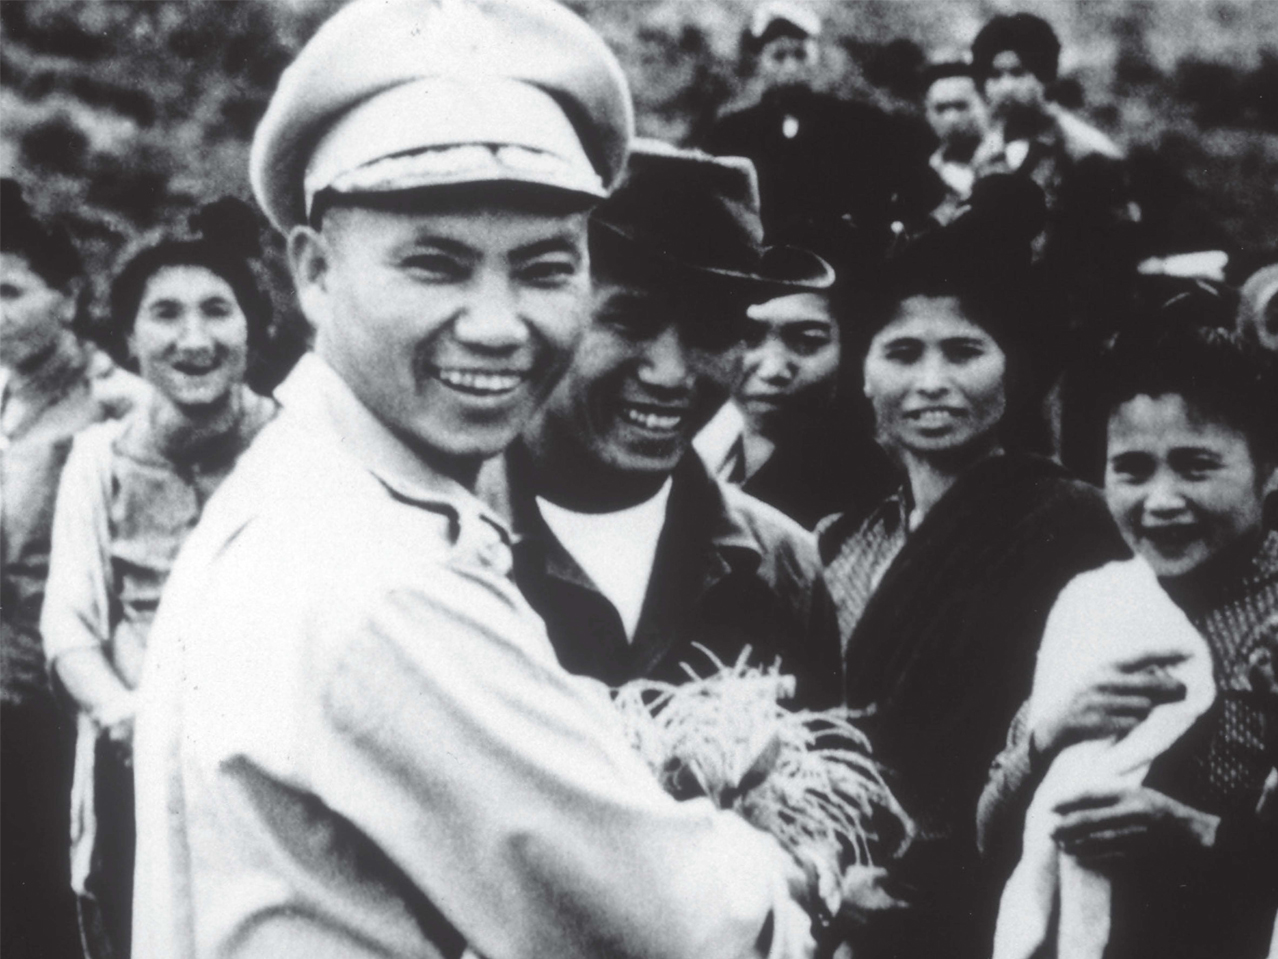 ICONIC FIGURE - Gen. Vang Pao is a leader and iconic figure in the Hmong community, and a key U.S. ally during the CIA-backed Secret War in Laos, a part of the Vietnam War, from 1960-1975.-- Noah Vang, author, Jan. 2011. Courtesy GVP Family.